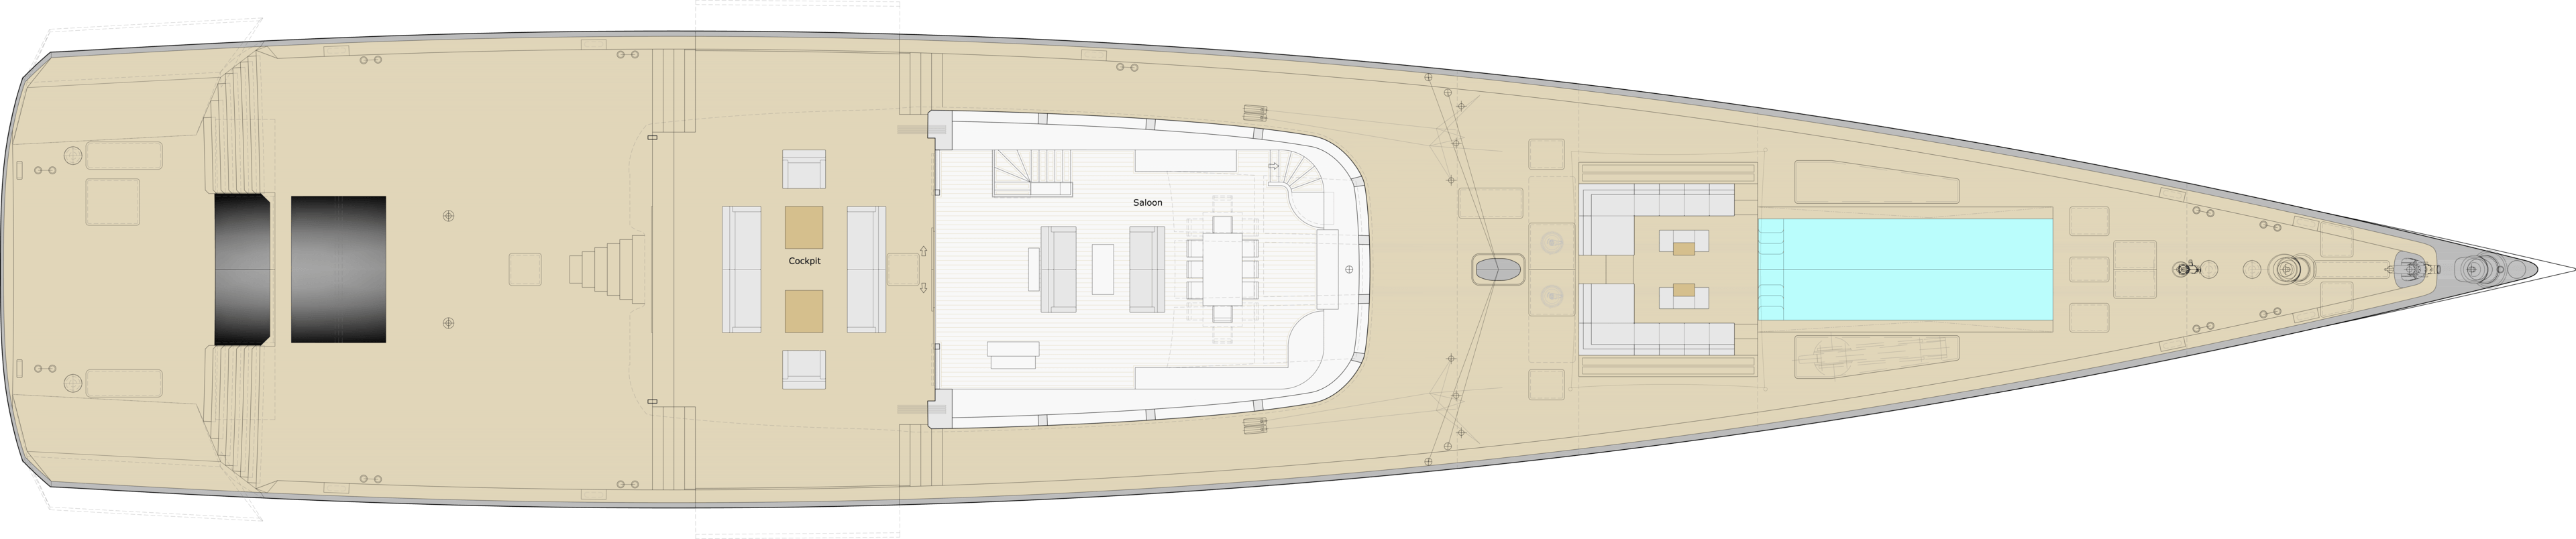 MMYD_055_72.5m_A_Saloon Plan_C.png